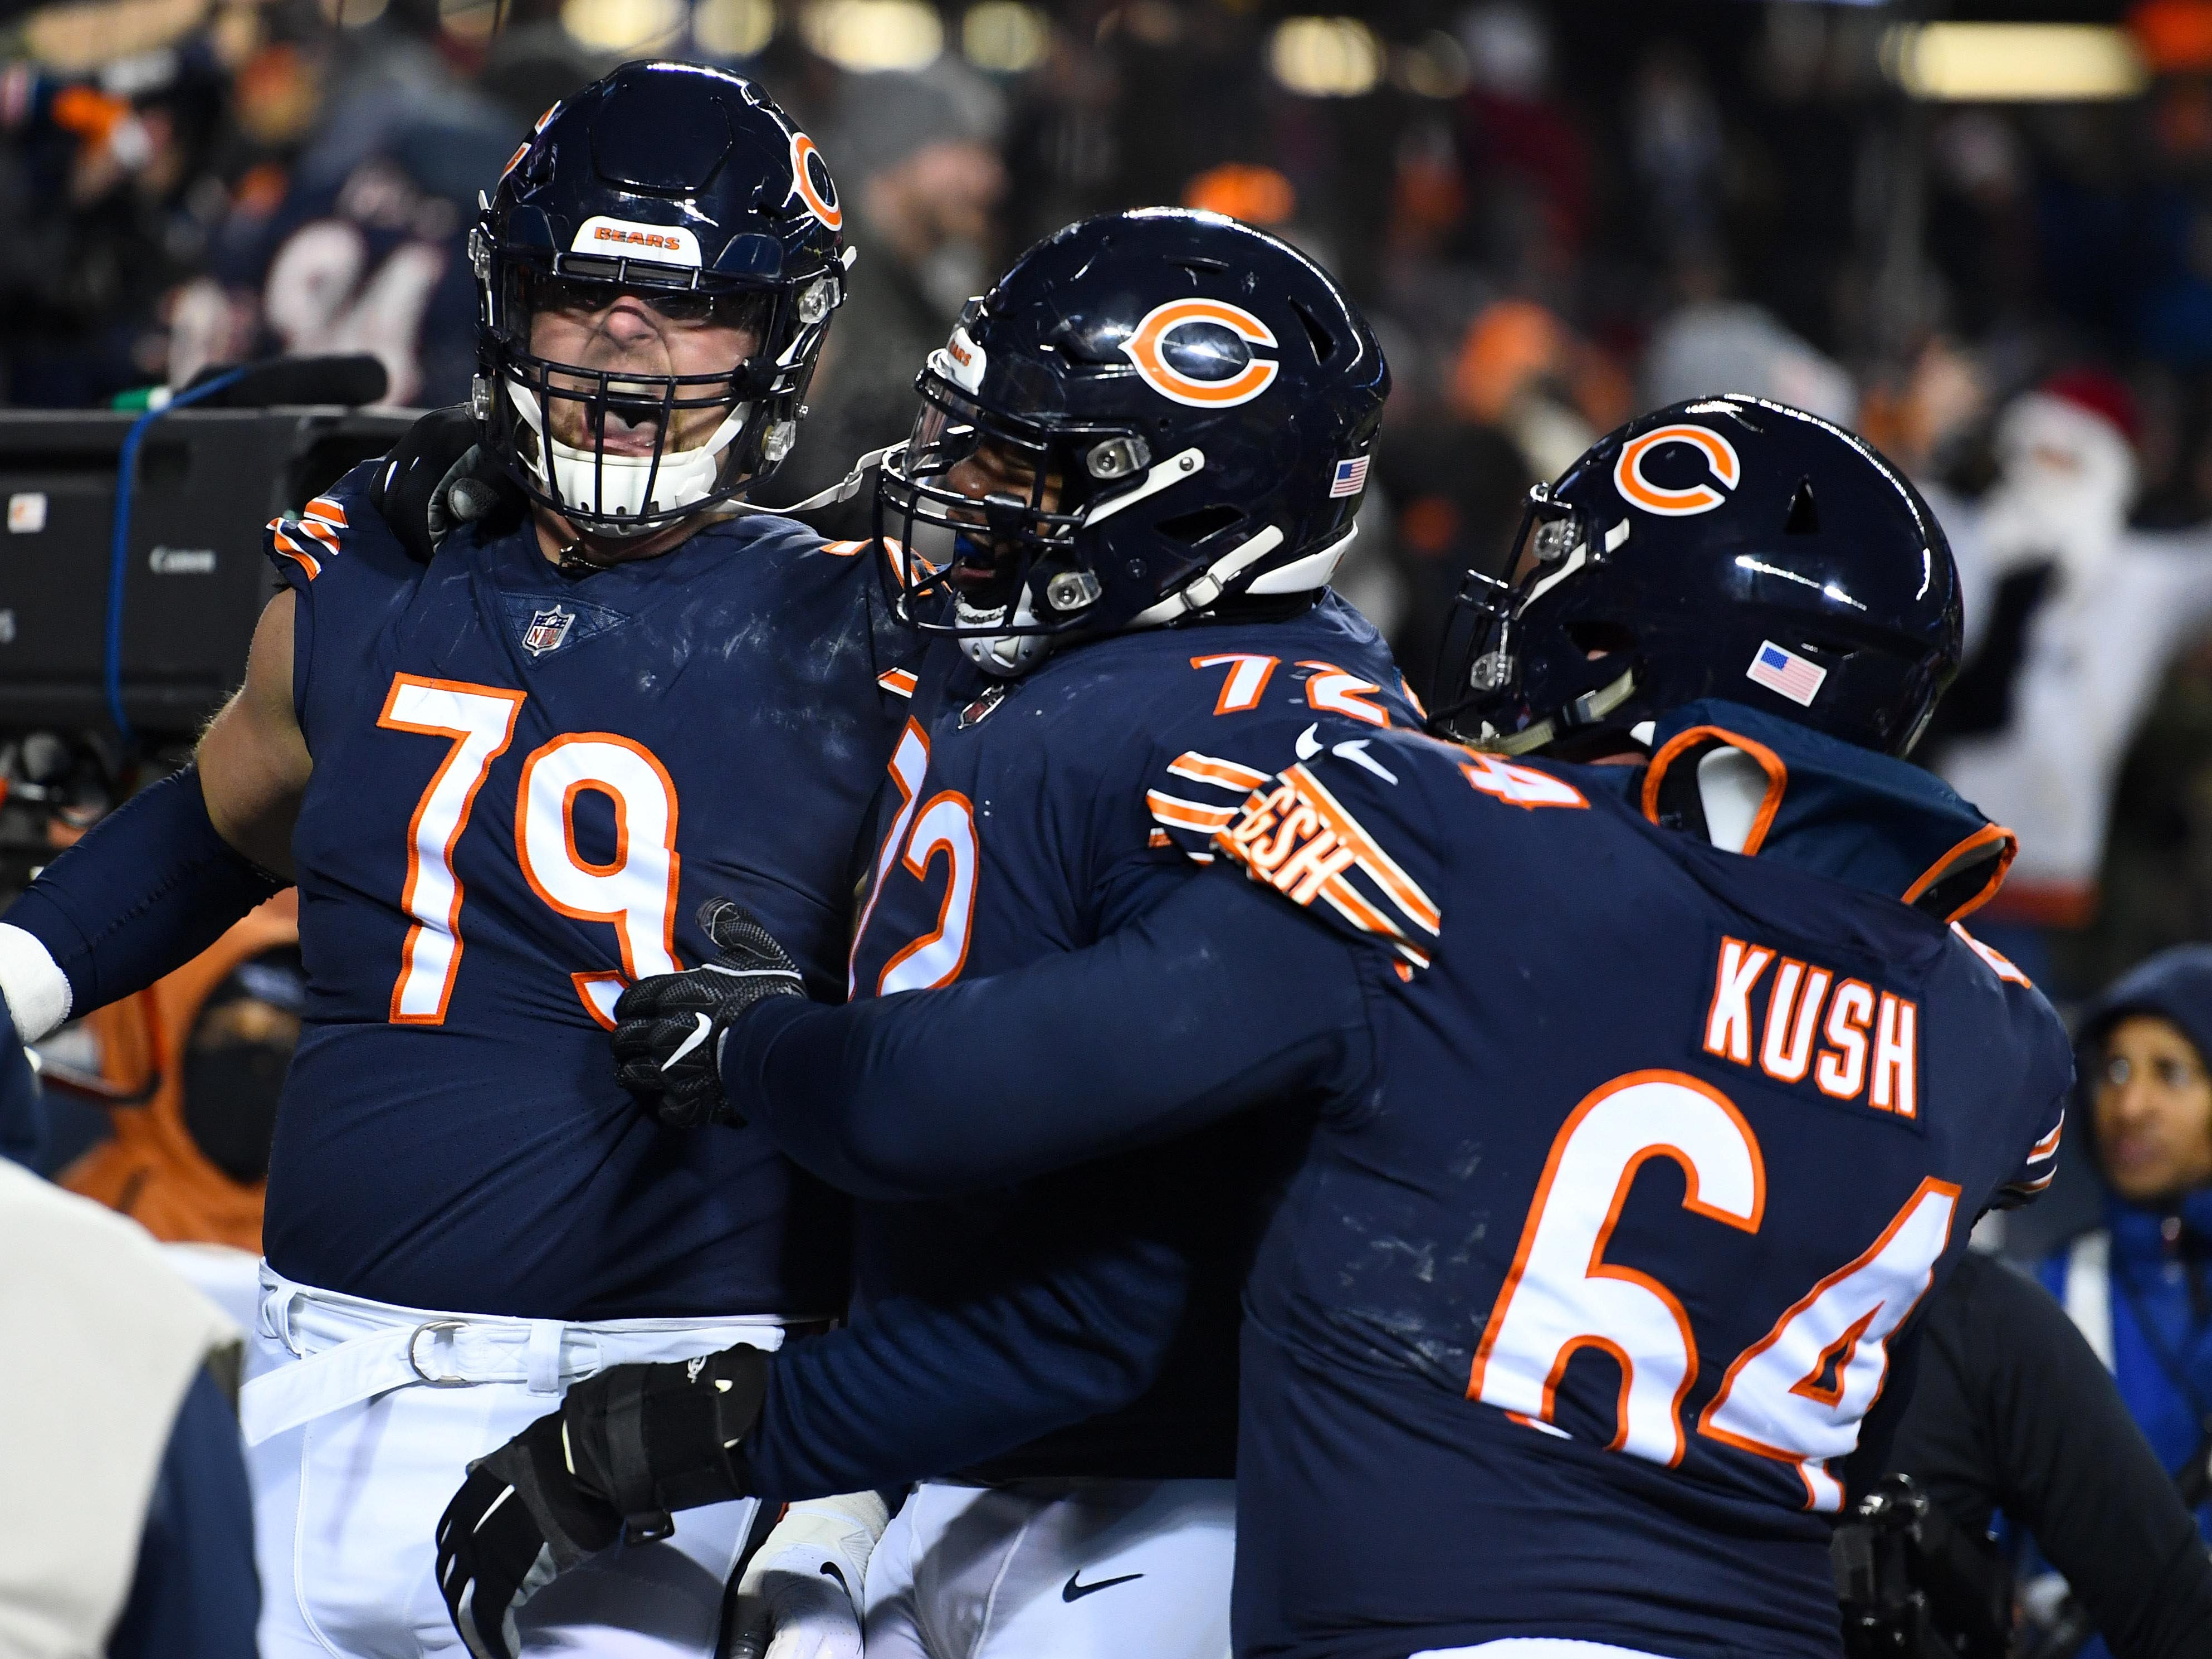 Chicago Bears offensive tackle Bradley Sowell (79) reacts after catching a touchdown against the Los Angeles Rams during the second half at Soldier Field.